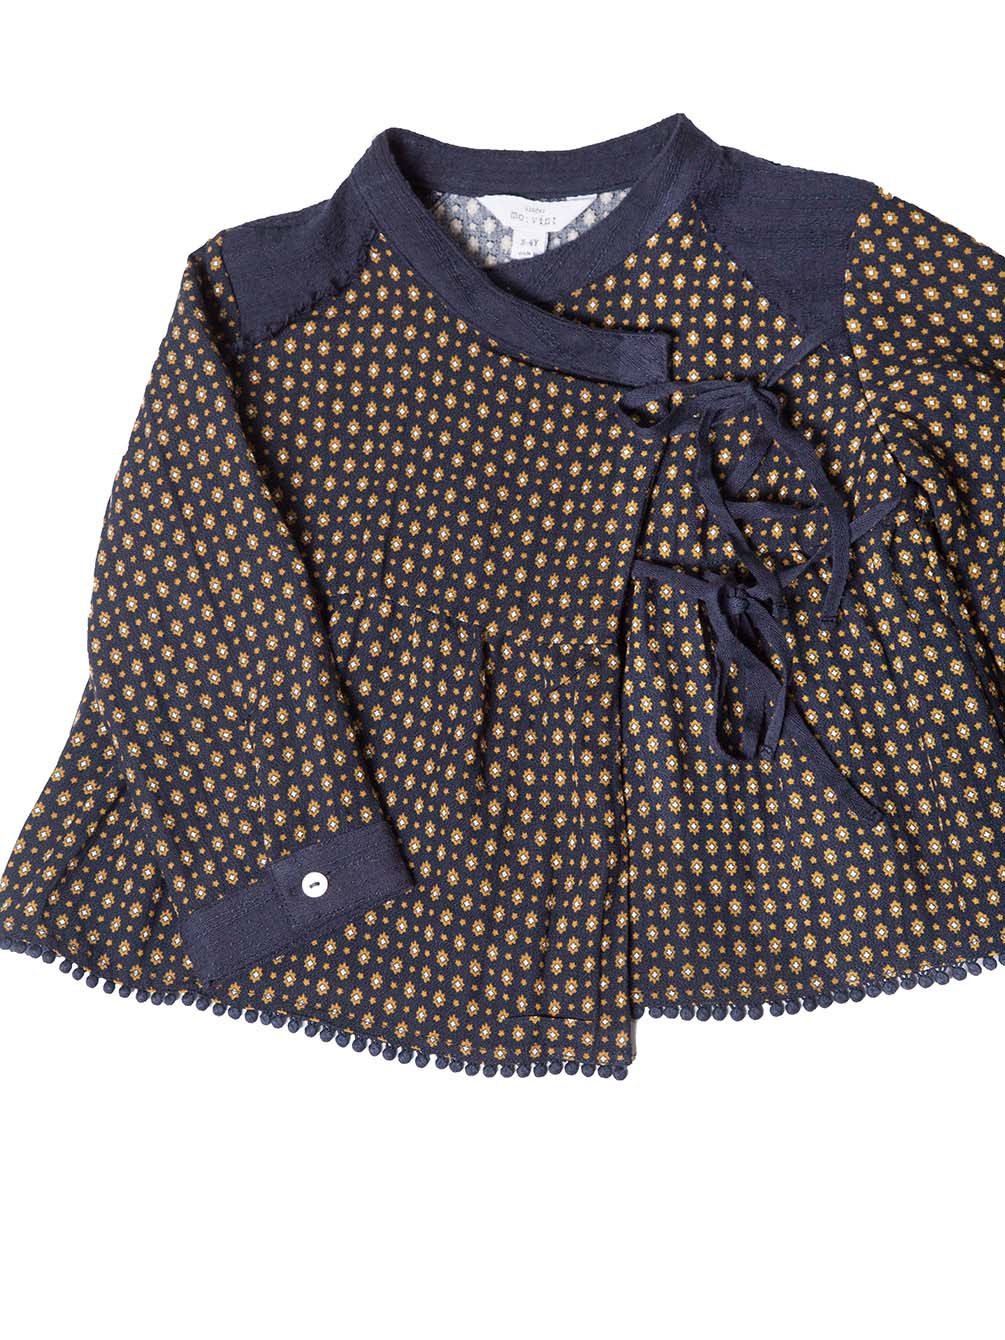 [KIDS] The Mini Antonia Top